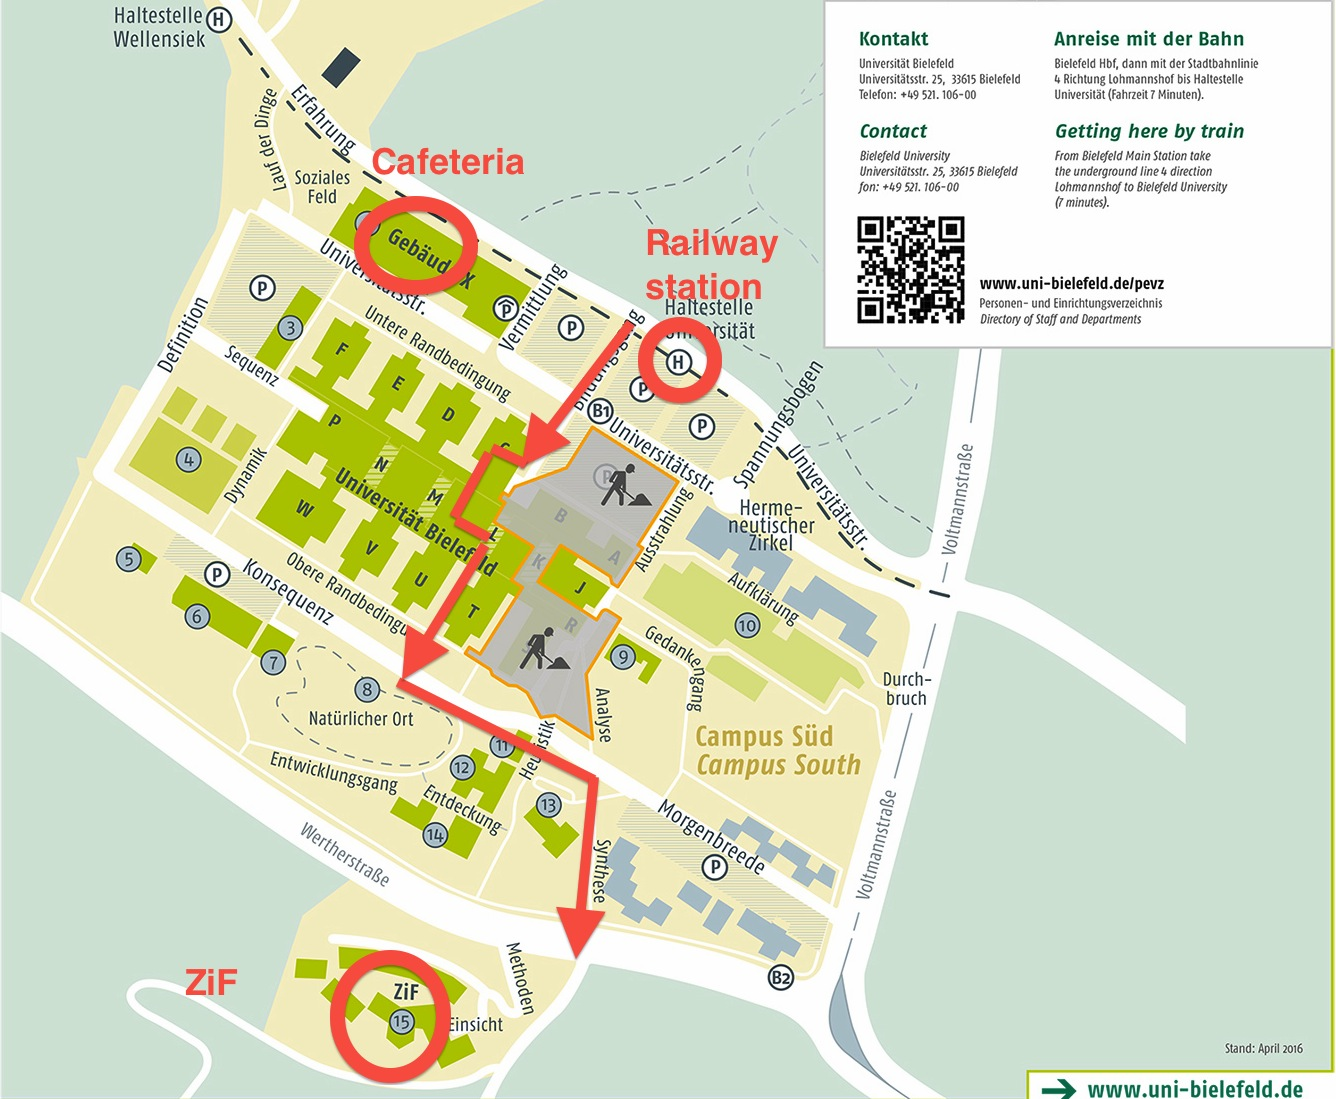 Bielefeld and Campus information